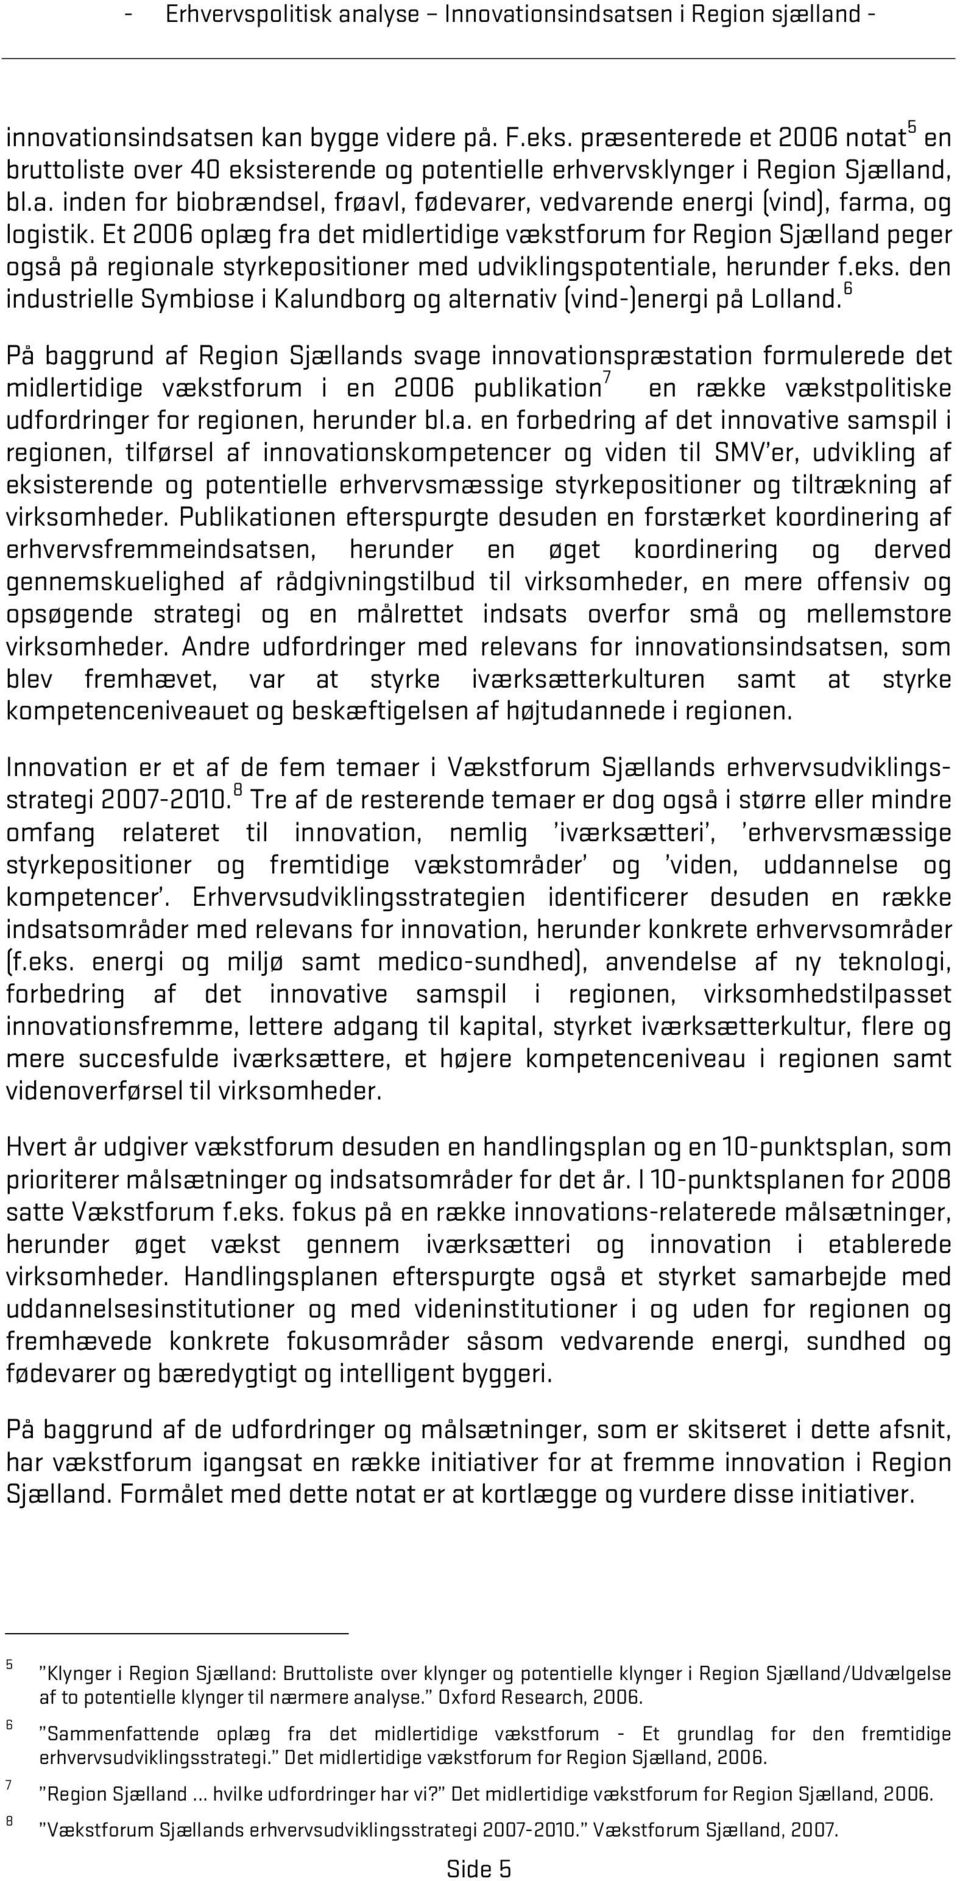 den industrielle Symbiose i Kalundborg og alternativ (vind-)energi på Lolland.